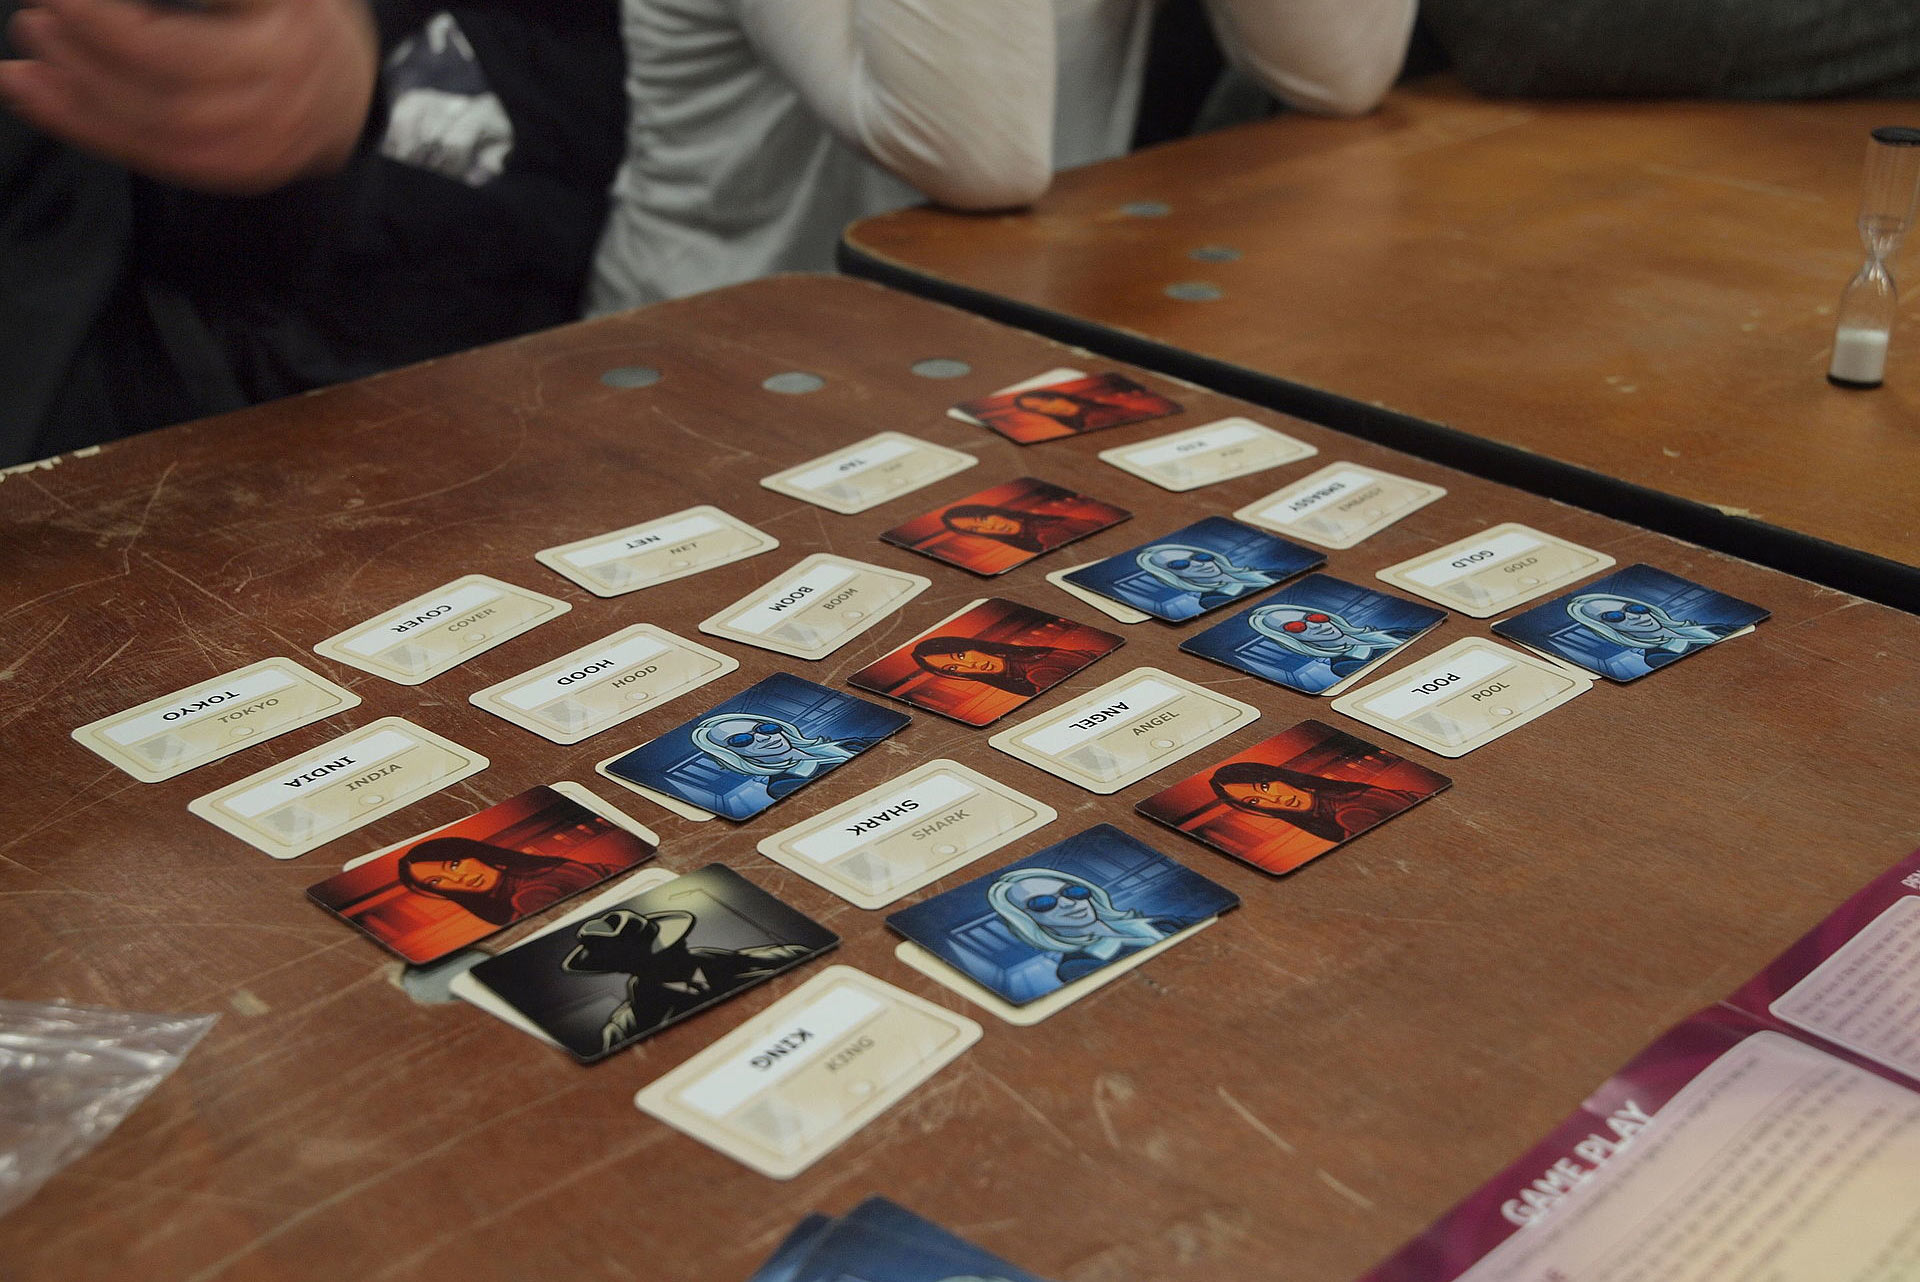 Photo of a game of Codenames being played at the annual board game festival of Finland in Helsinki, Finland. Some cards in the five by five grid show words, while others have blue, red and black illustrations of people.